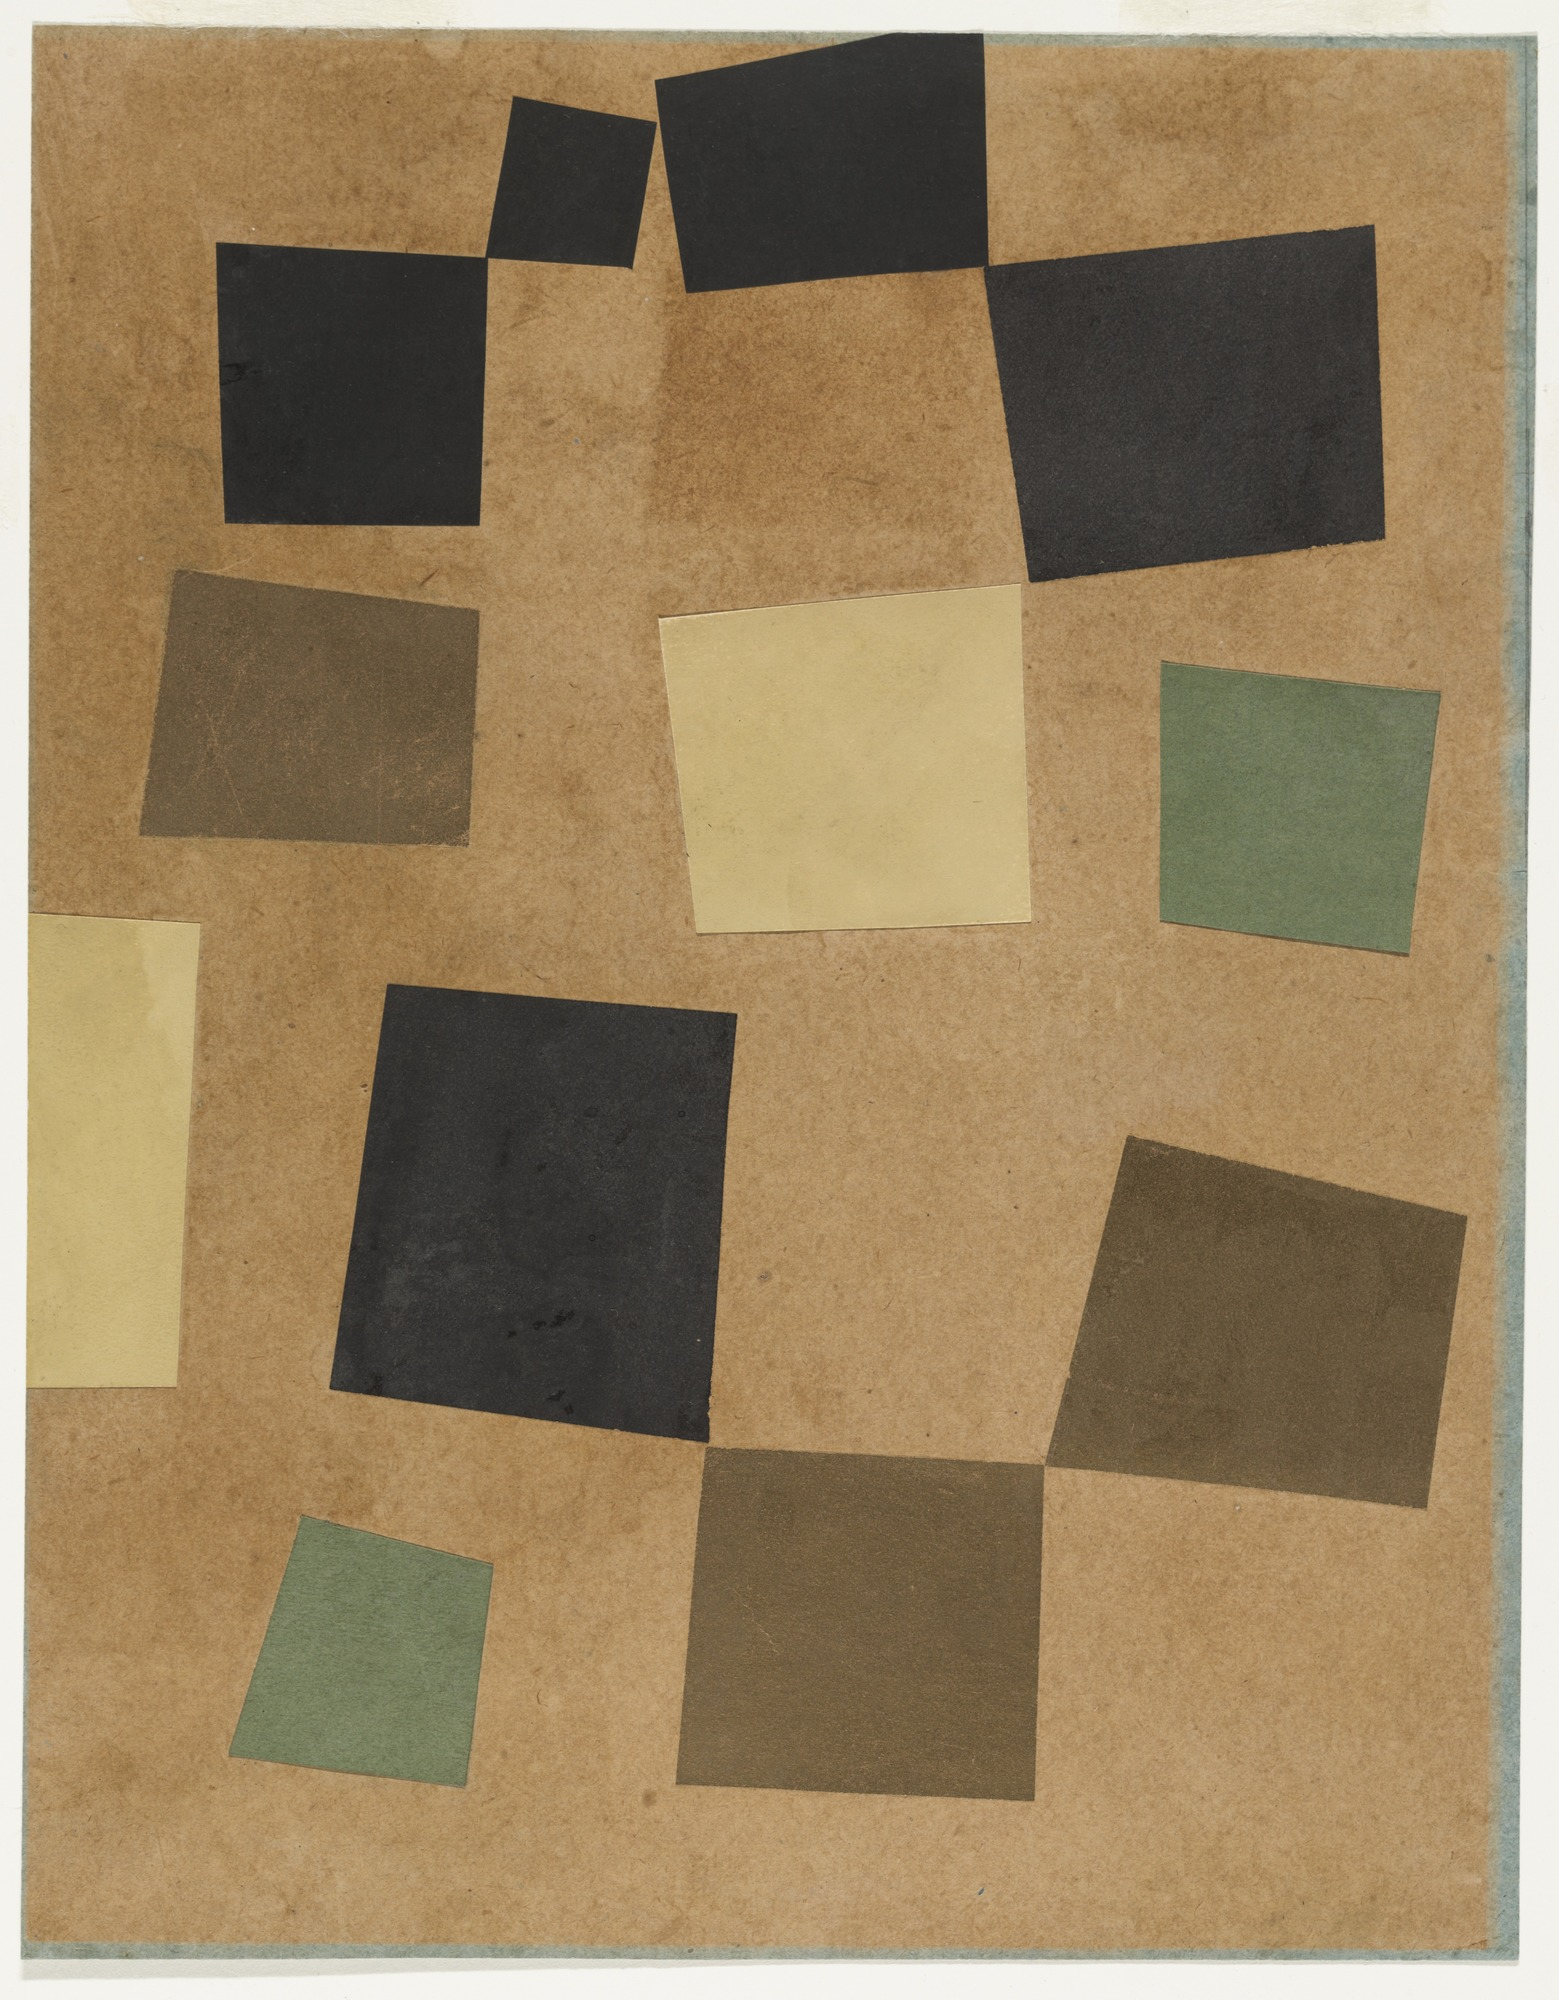 Hans Arp, Untitled (Squares Arranged According to the Laws of Chance) 1917. Bild: MoMa